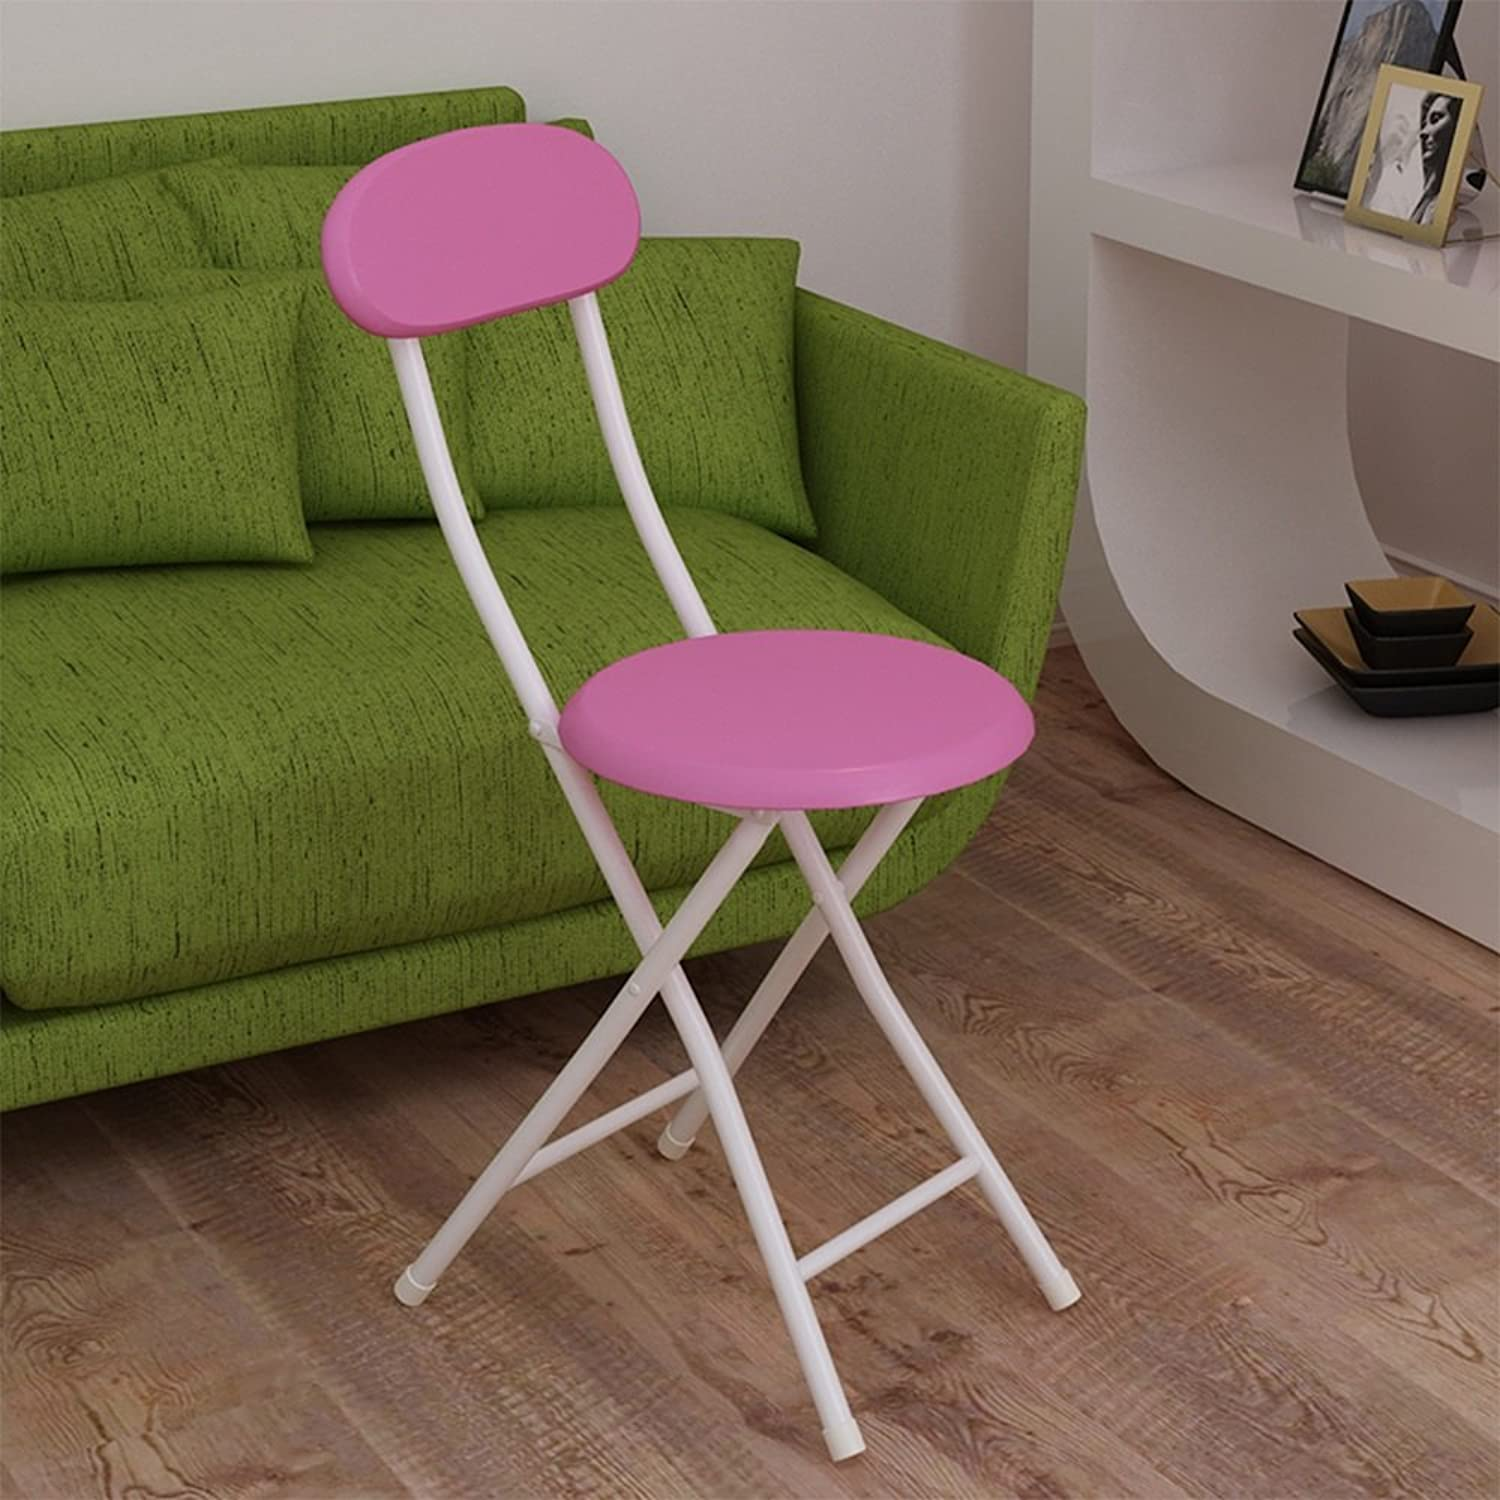 Backrest Folding Chairs Lounge Chair Dorm Room Small Chair Home Stool Training Chair Folding Chair Bench (color   Pink)